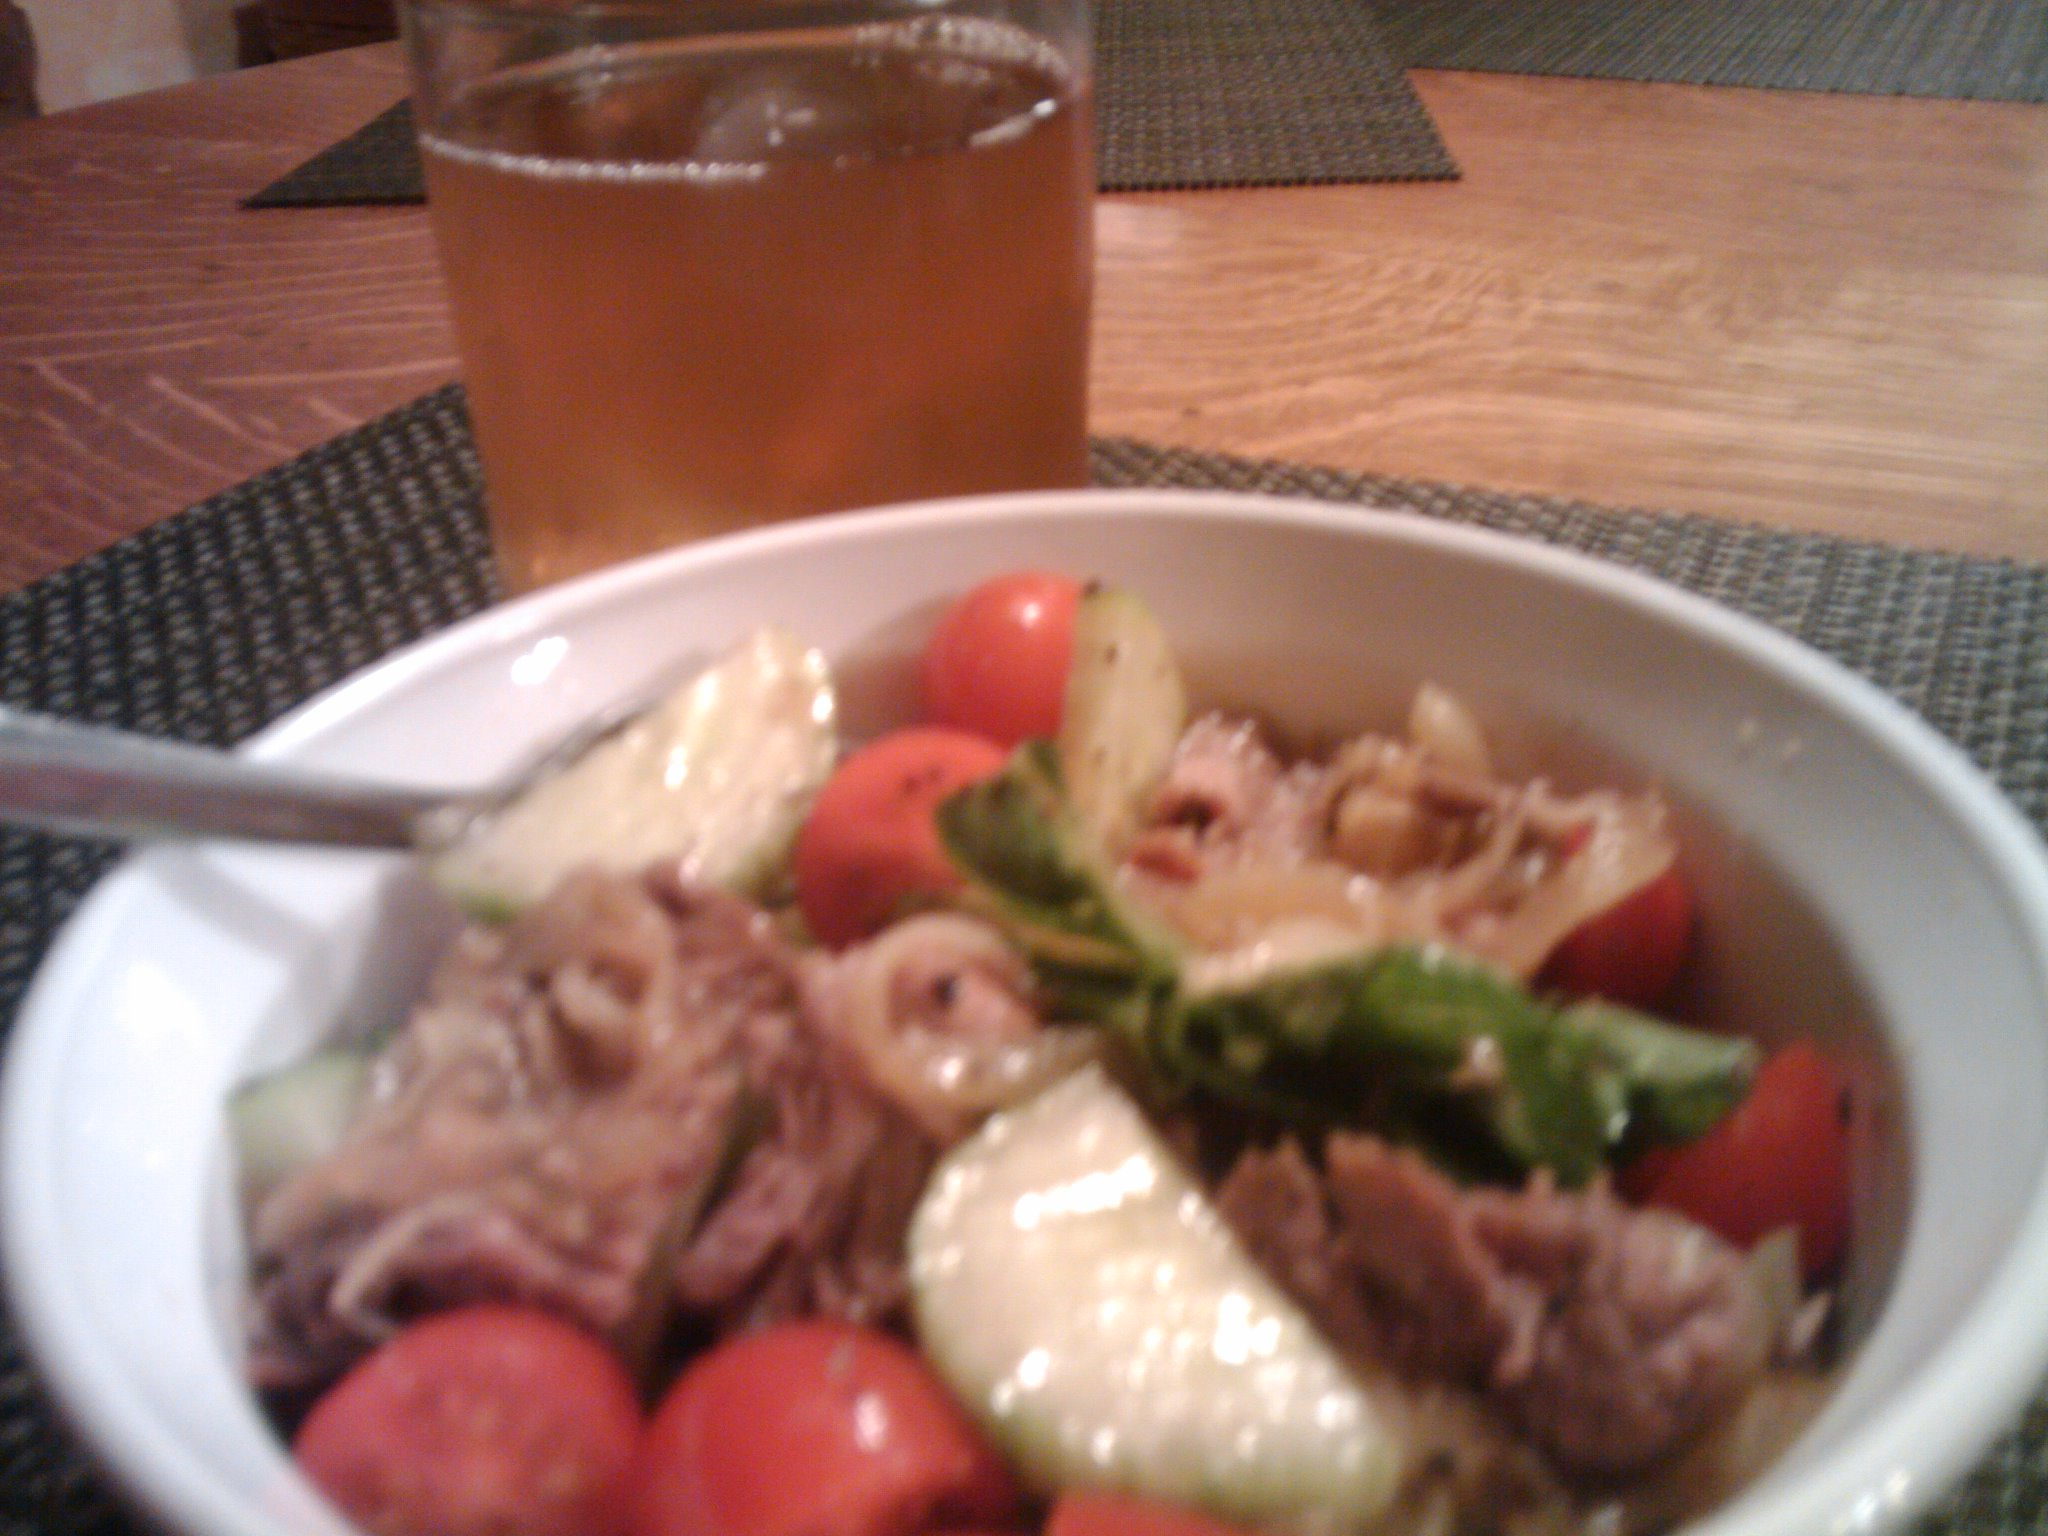 1St Ward  :: Salada= Romaine, Cherry Tomatoes, Cucumbers, and thin sliced Steak w/ Carmelized Onions...Beverage= Green Tea...yummy in my tummy... up your nose w/ a rubber hose kalboogirl